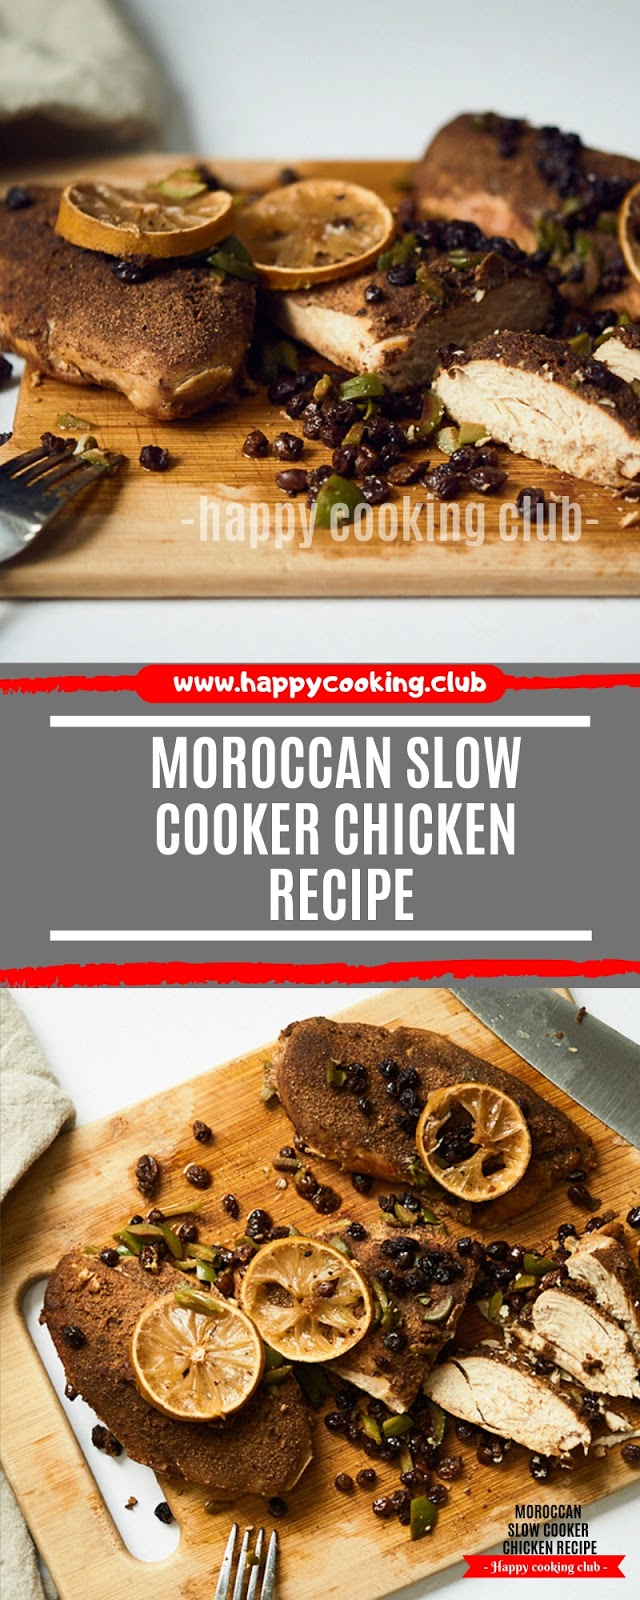 Moroccan Slow Cooker Chicken Recipe